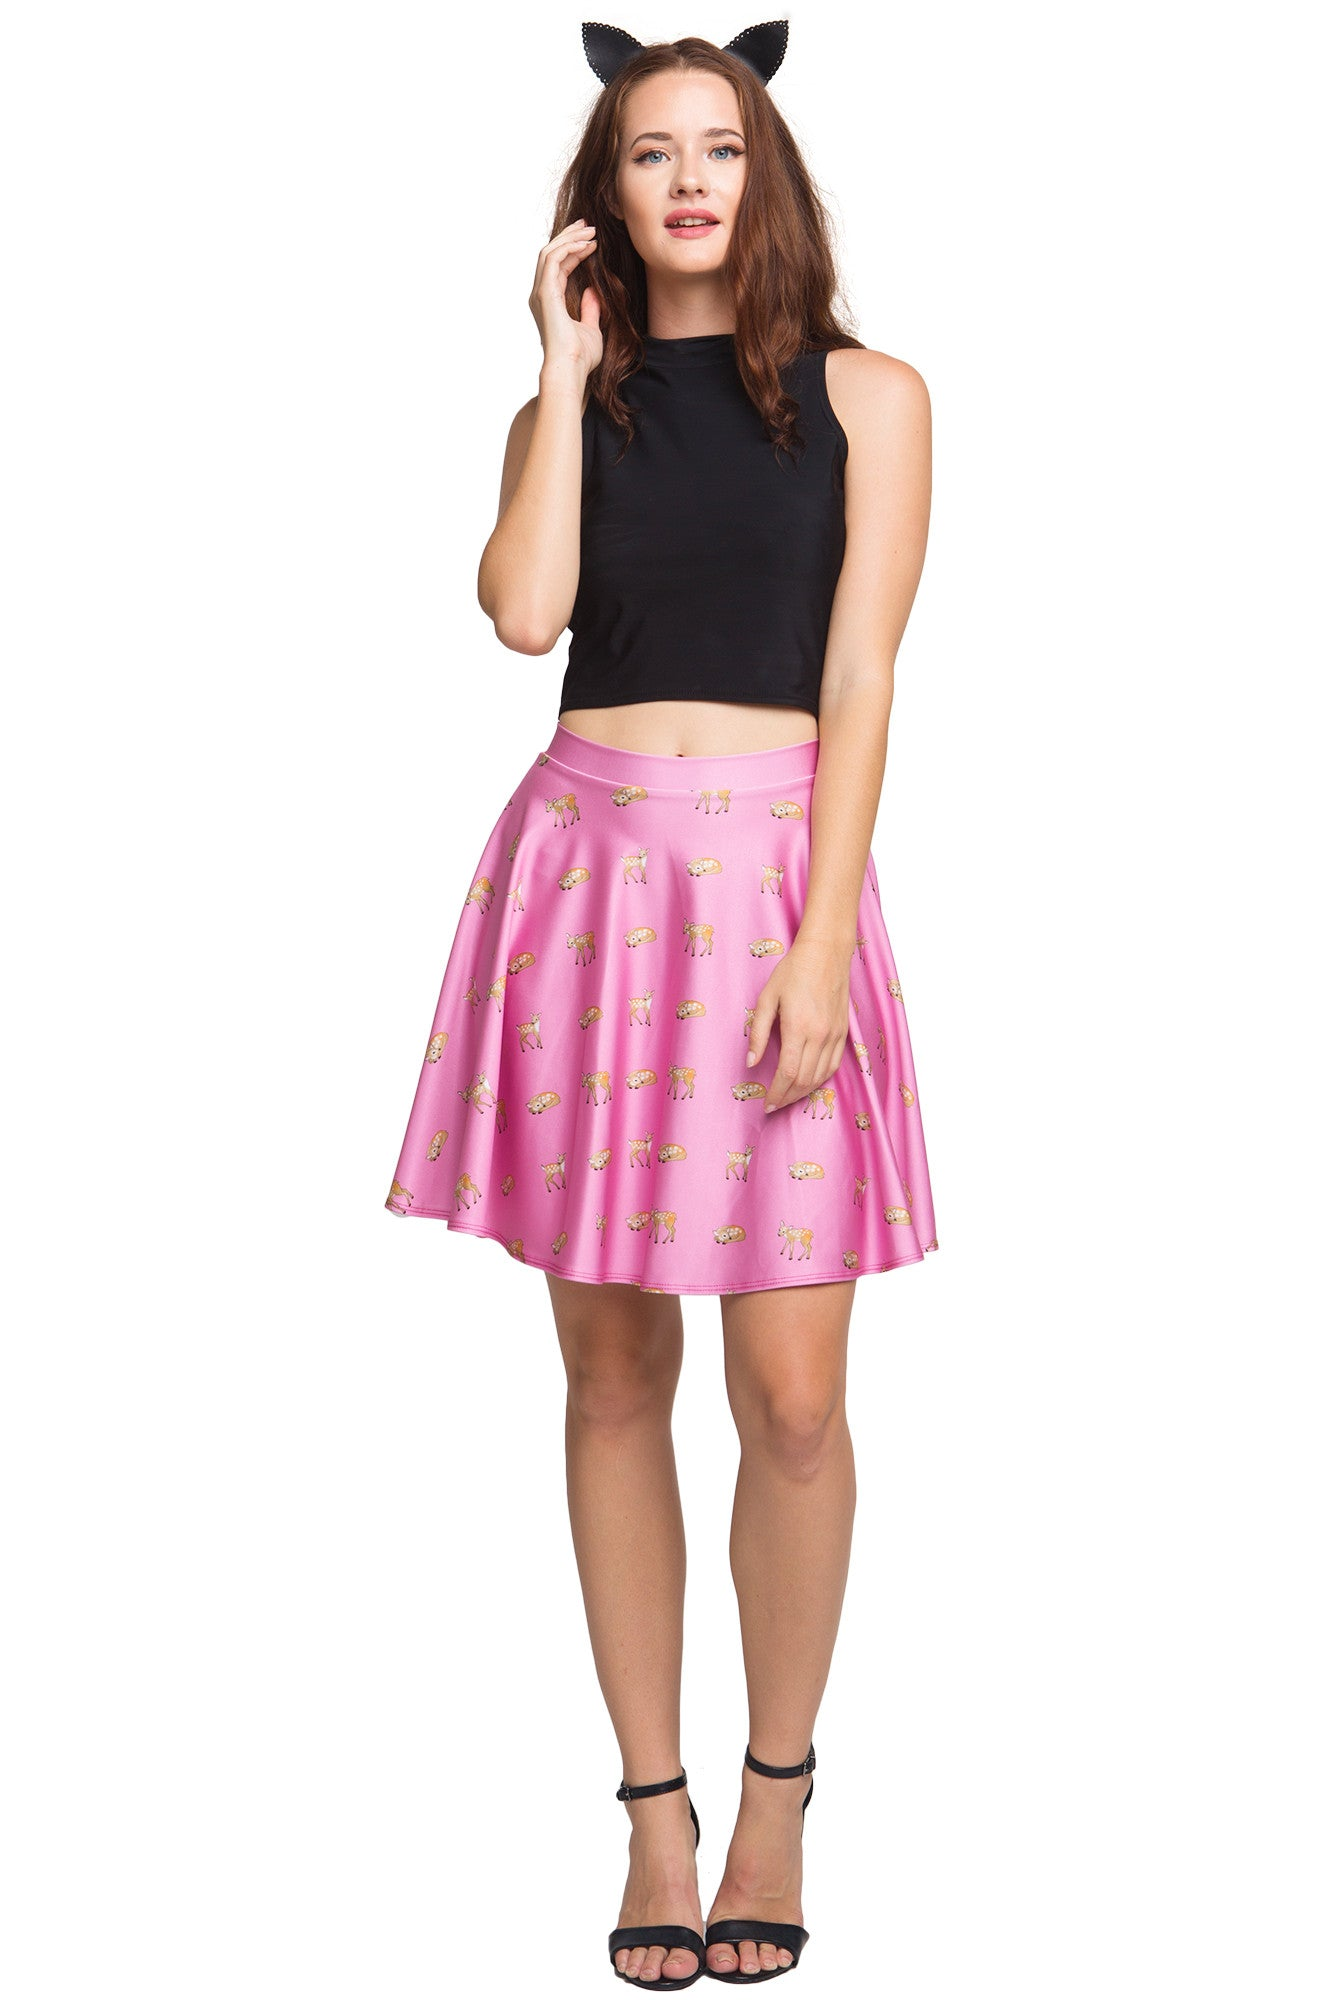 Oh Deer! Skater Skirt